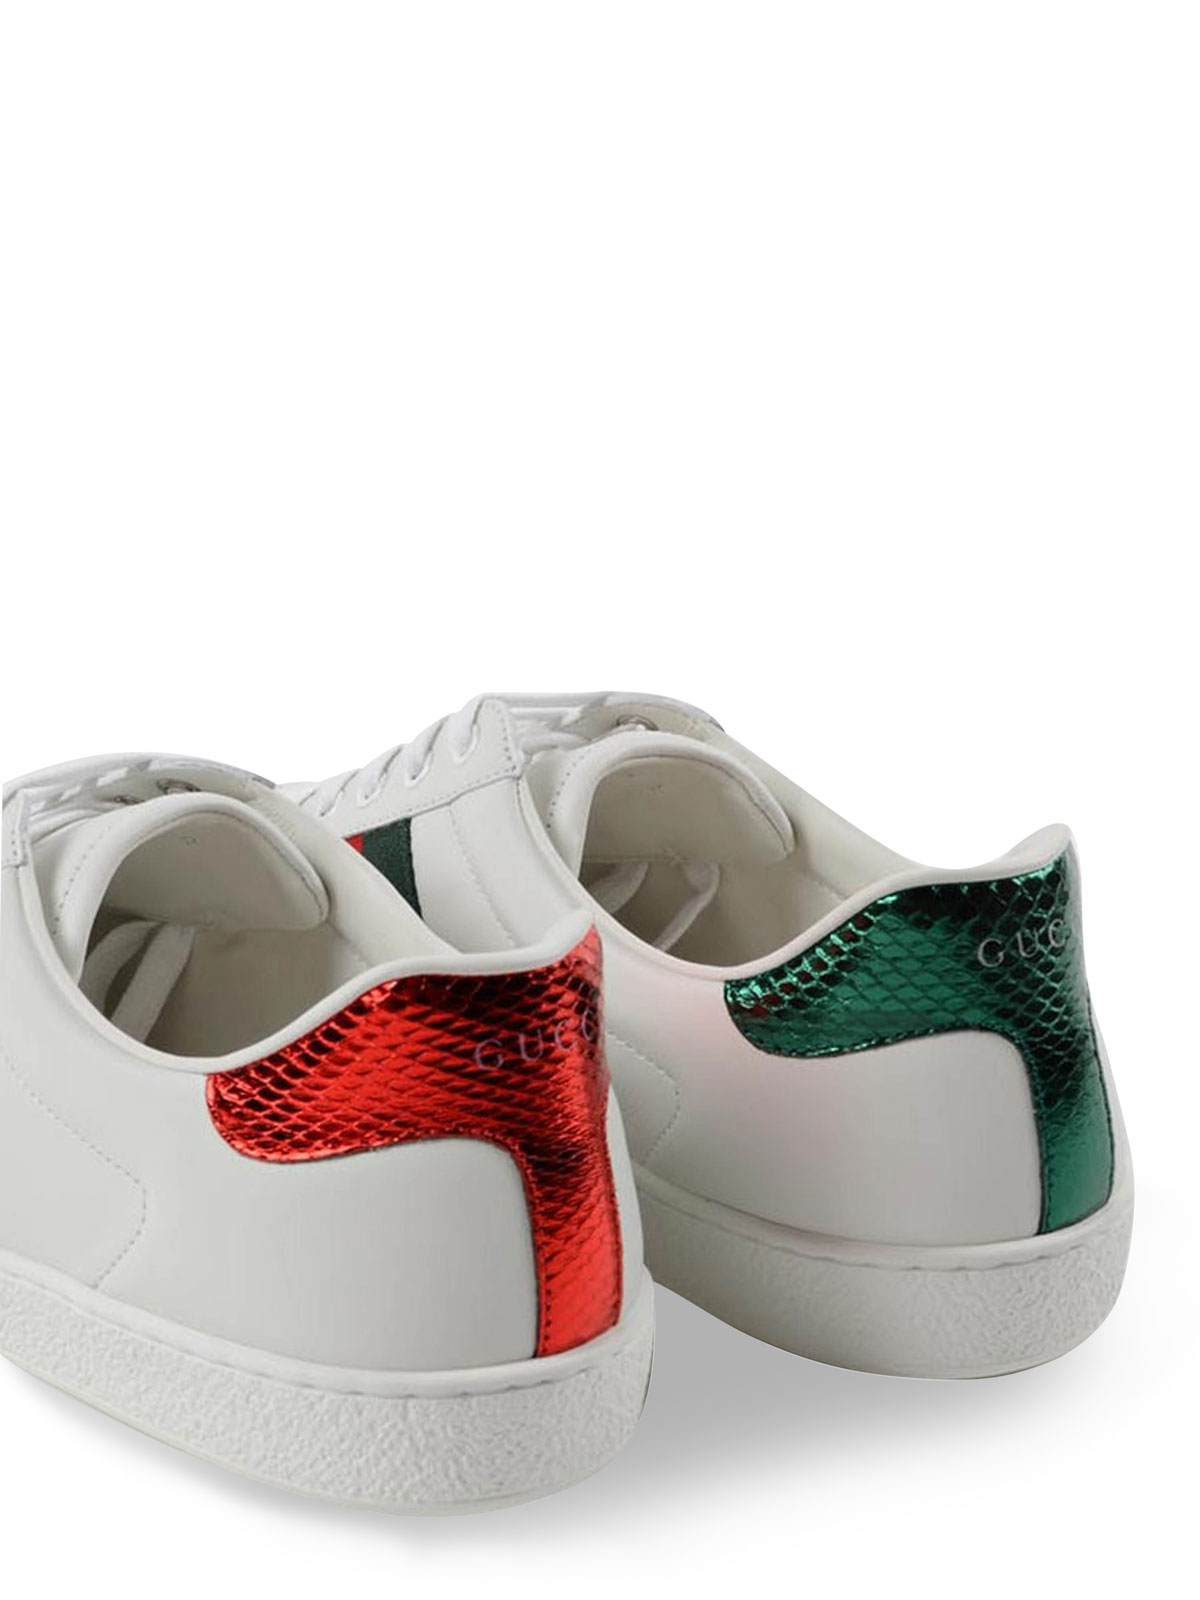 Gucci - Bee detailed leather sneakers